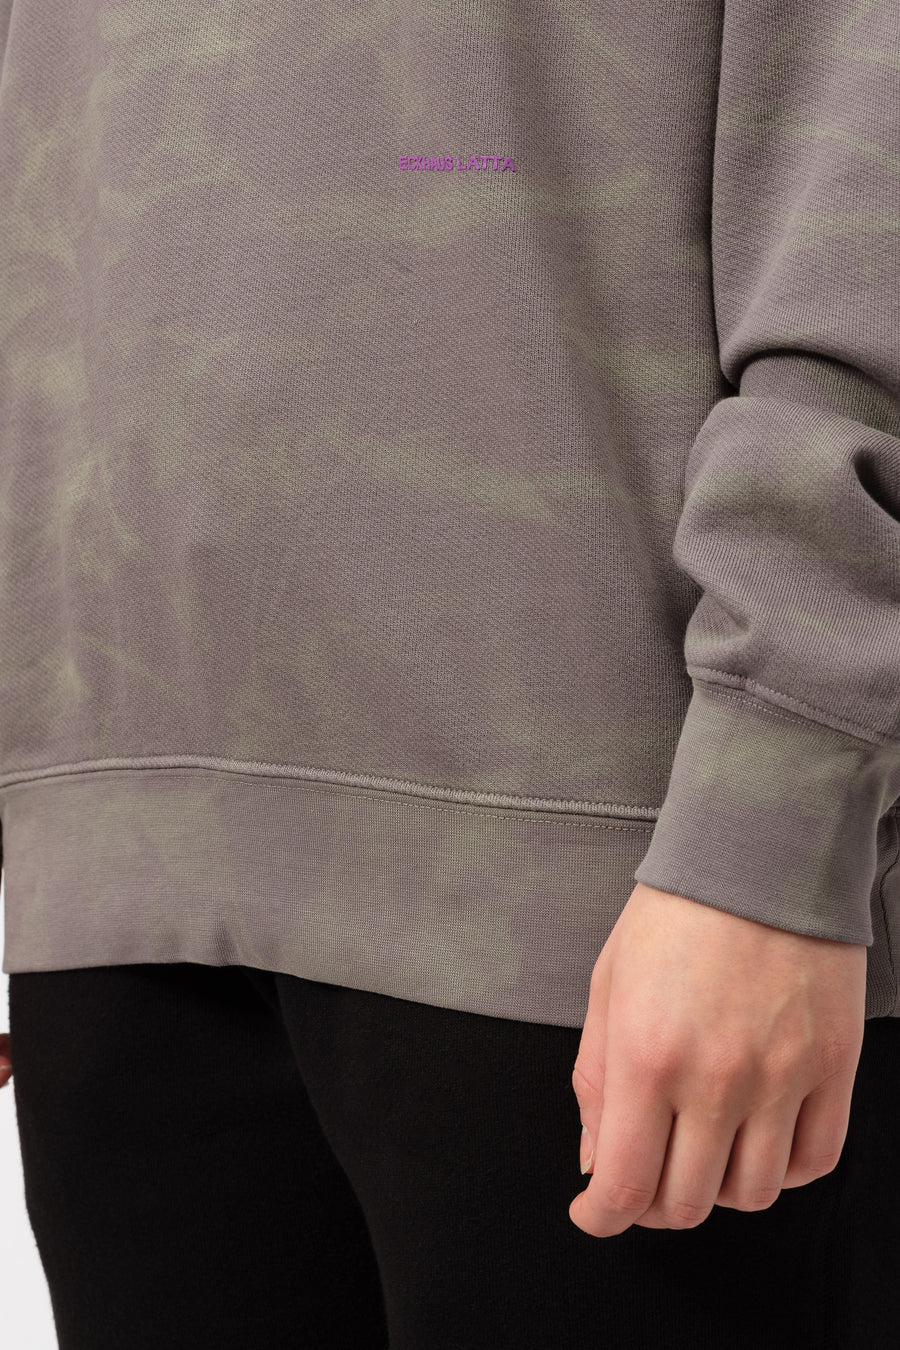 Eckhaus Latta Sweatshirt in Smoke - Notre